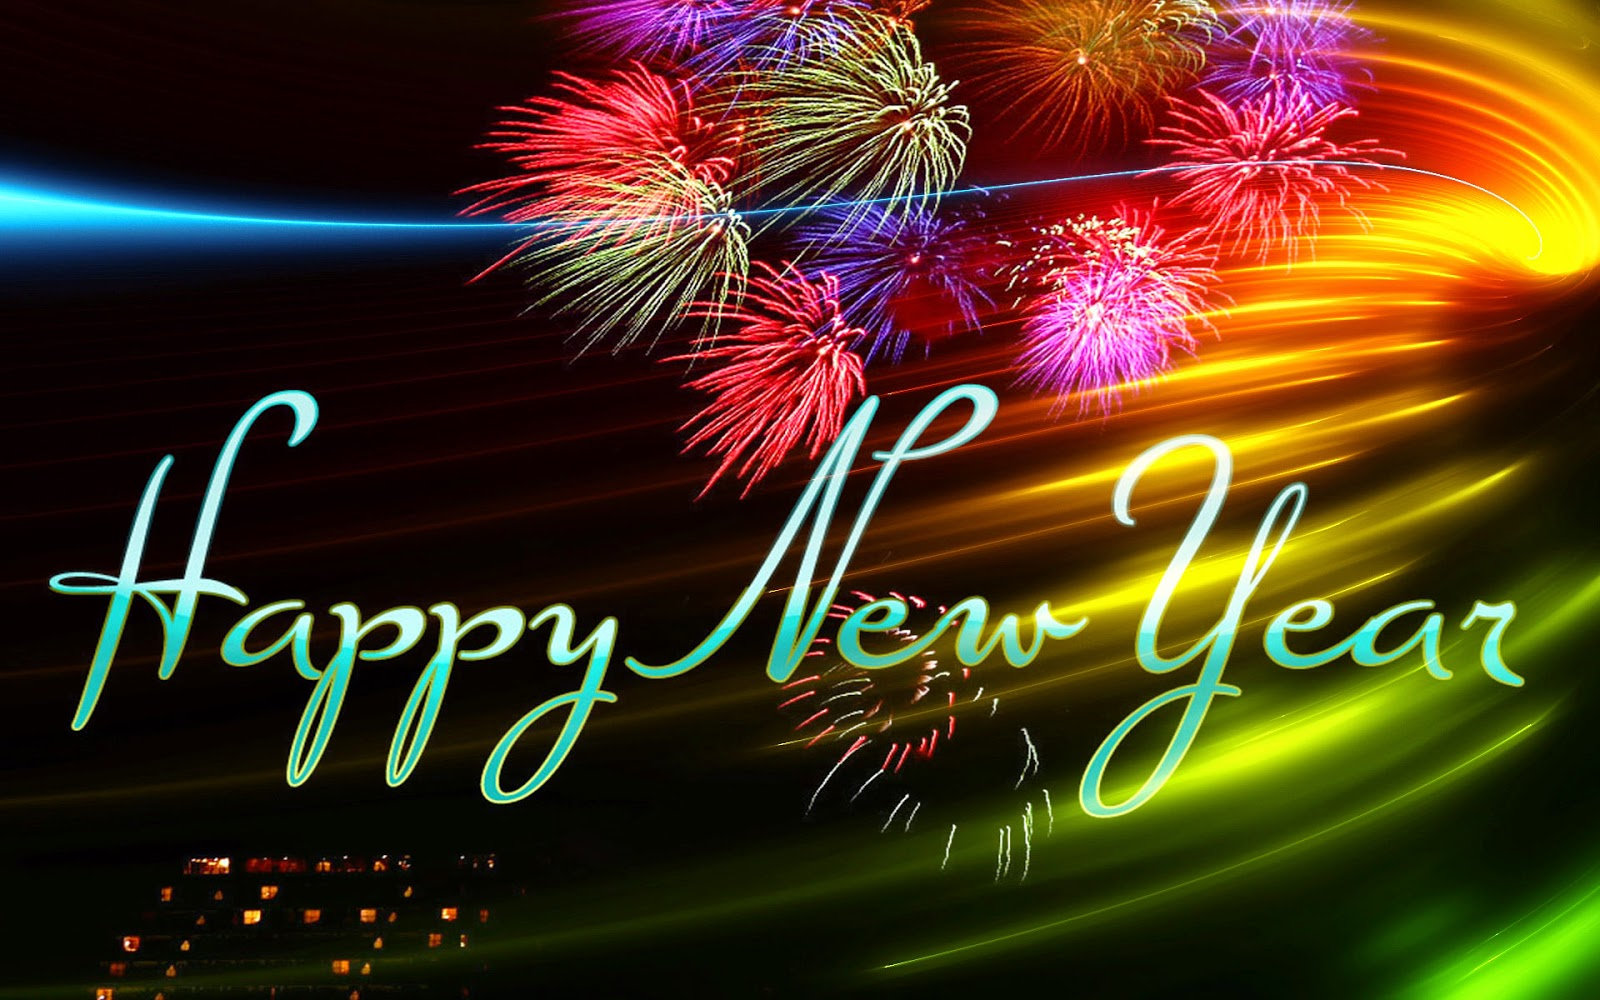 Live Wallpaper For Whatsapp - Advance Happy New Year 2019 Images Hd , HD Wallpaper & Backgrounds